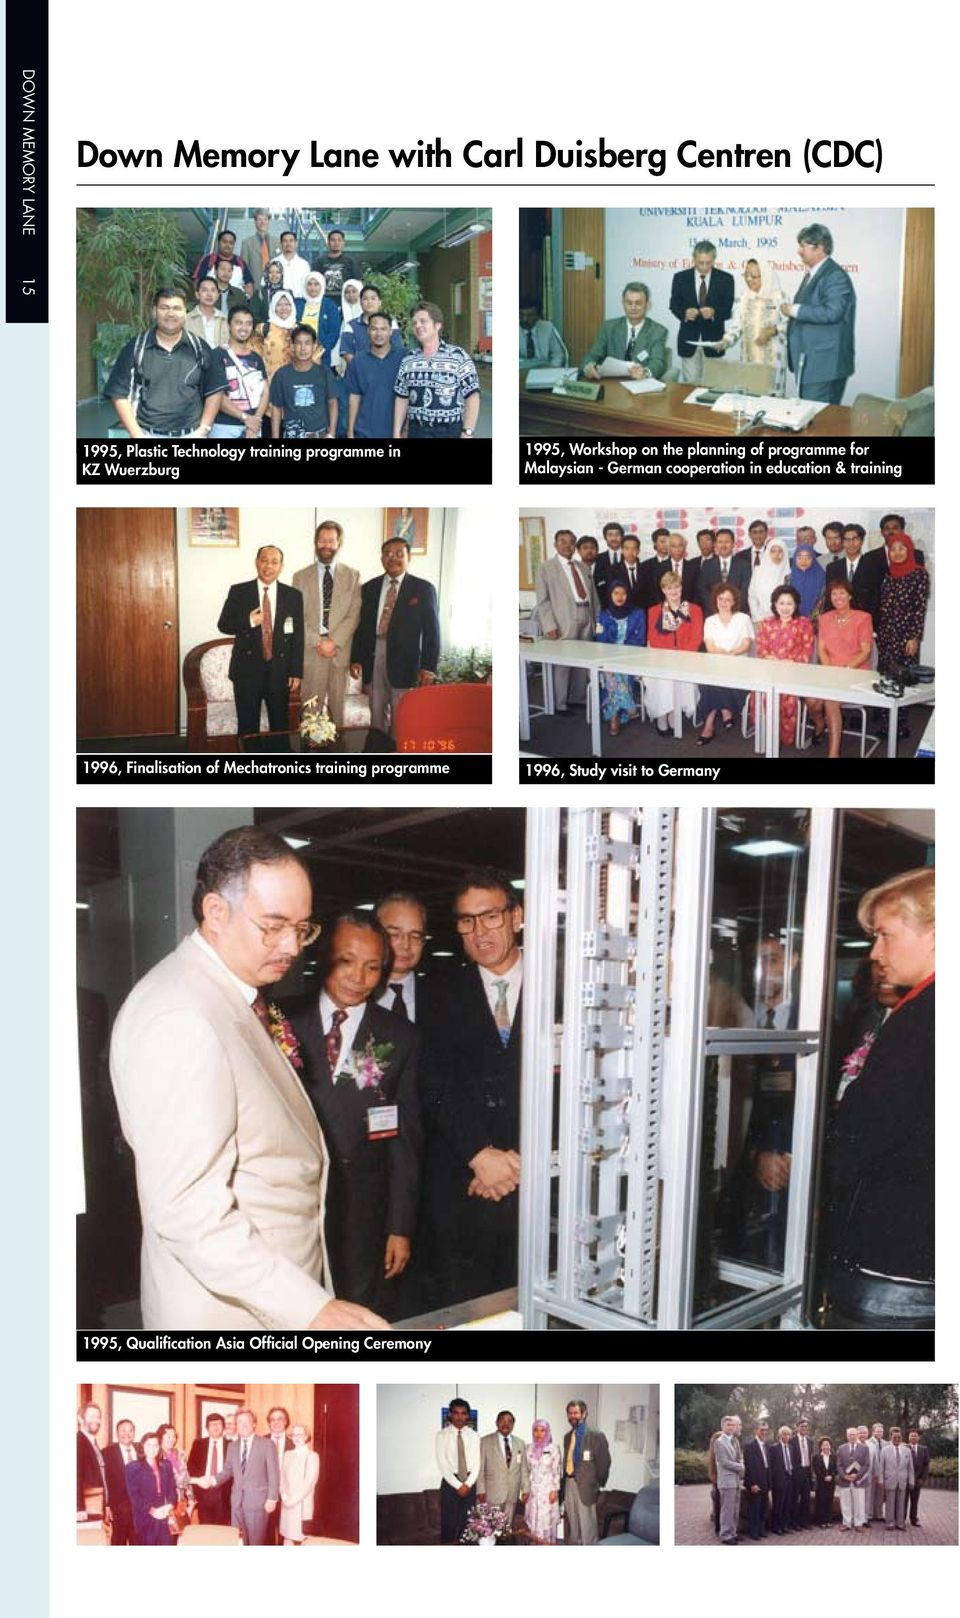 for Malaysian - German cooperation in education & training 1996, Finalisation of